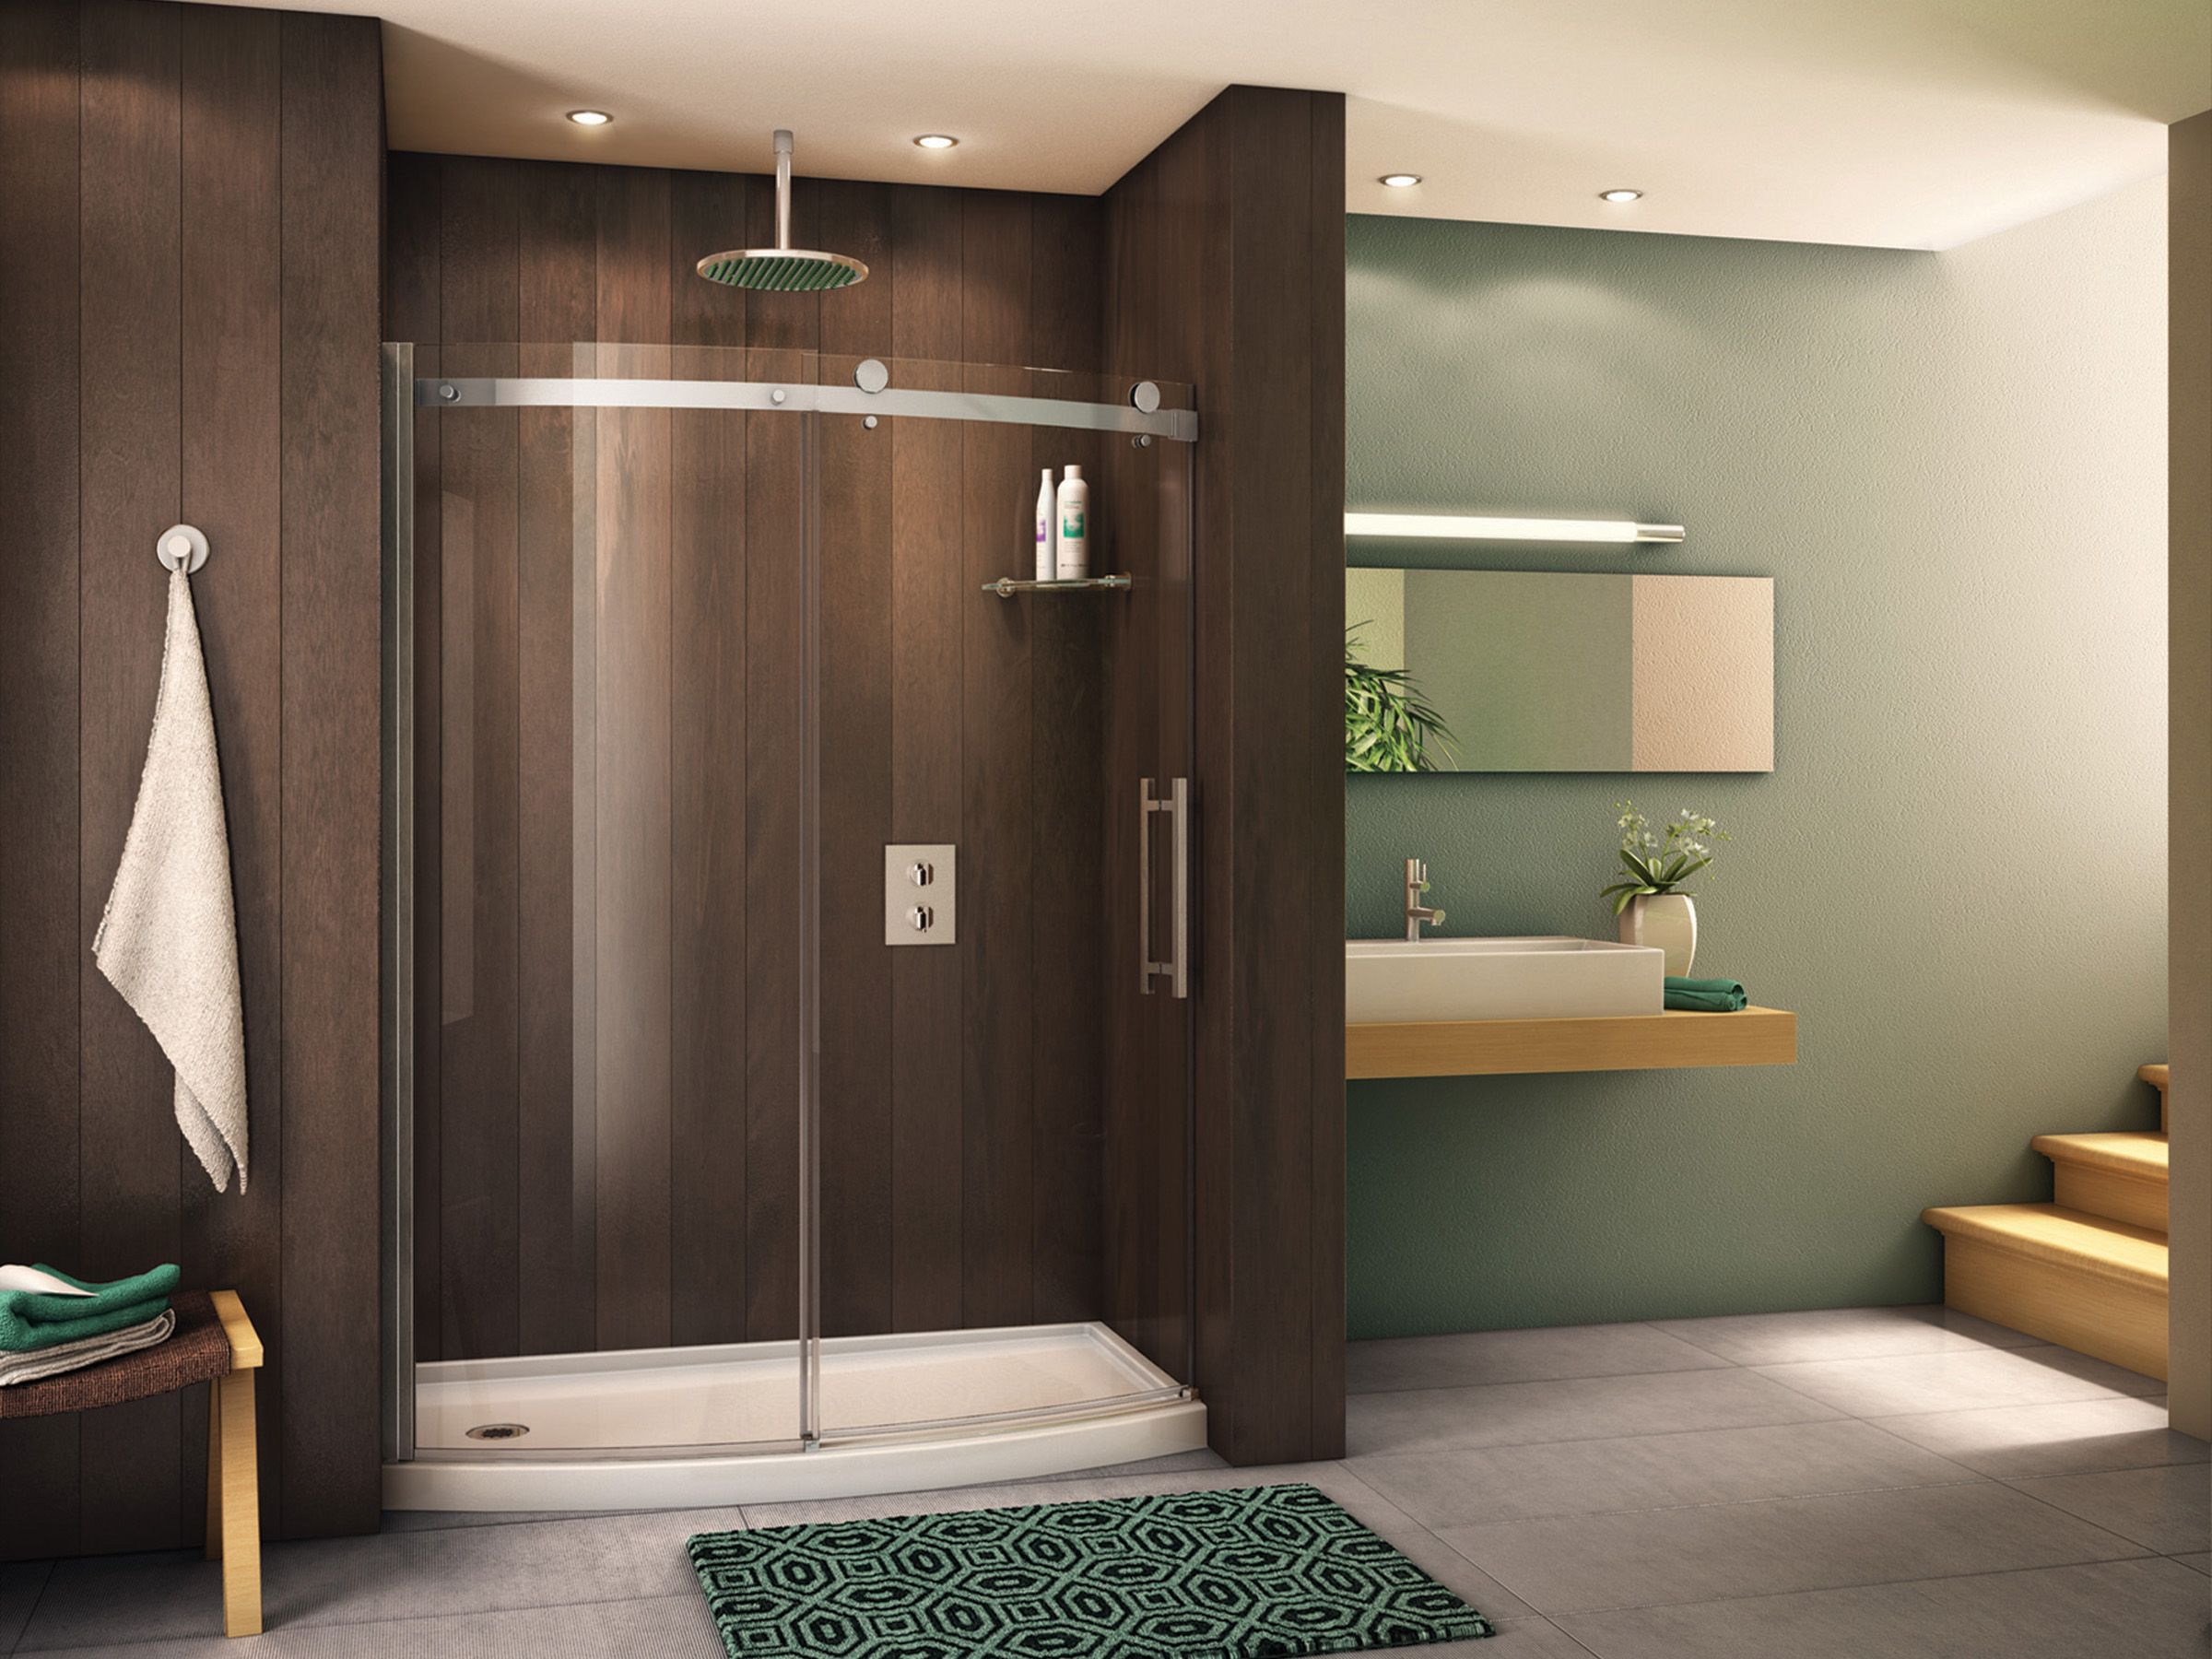 Bathroom Interior Showy Glass Shower Doors Luxurious Enclosure Design Contemporary Apartment With